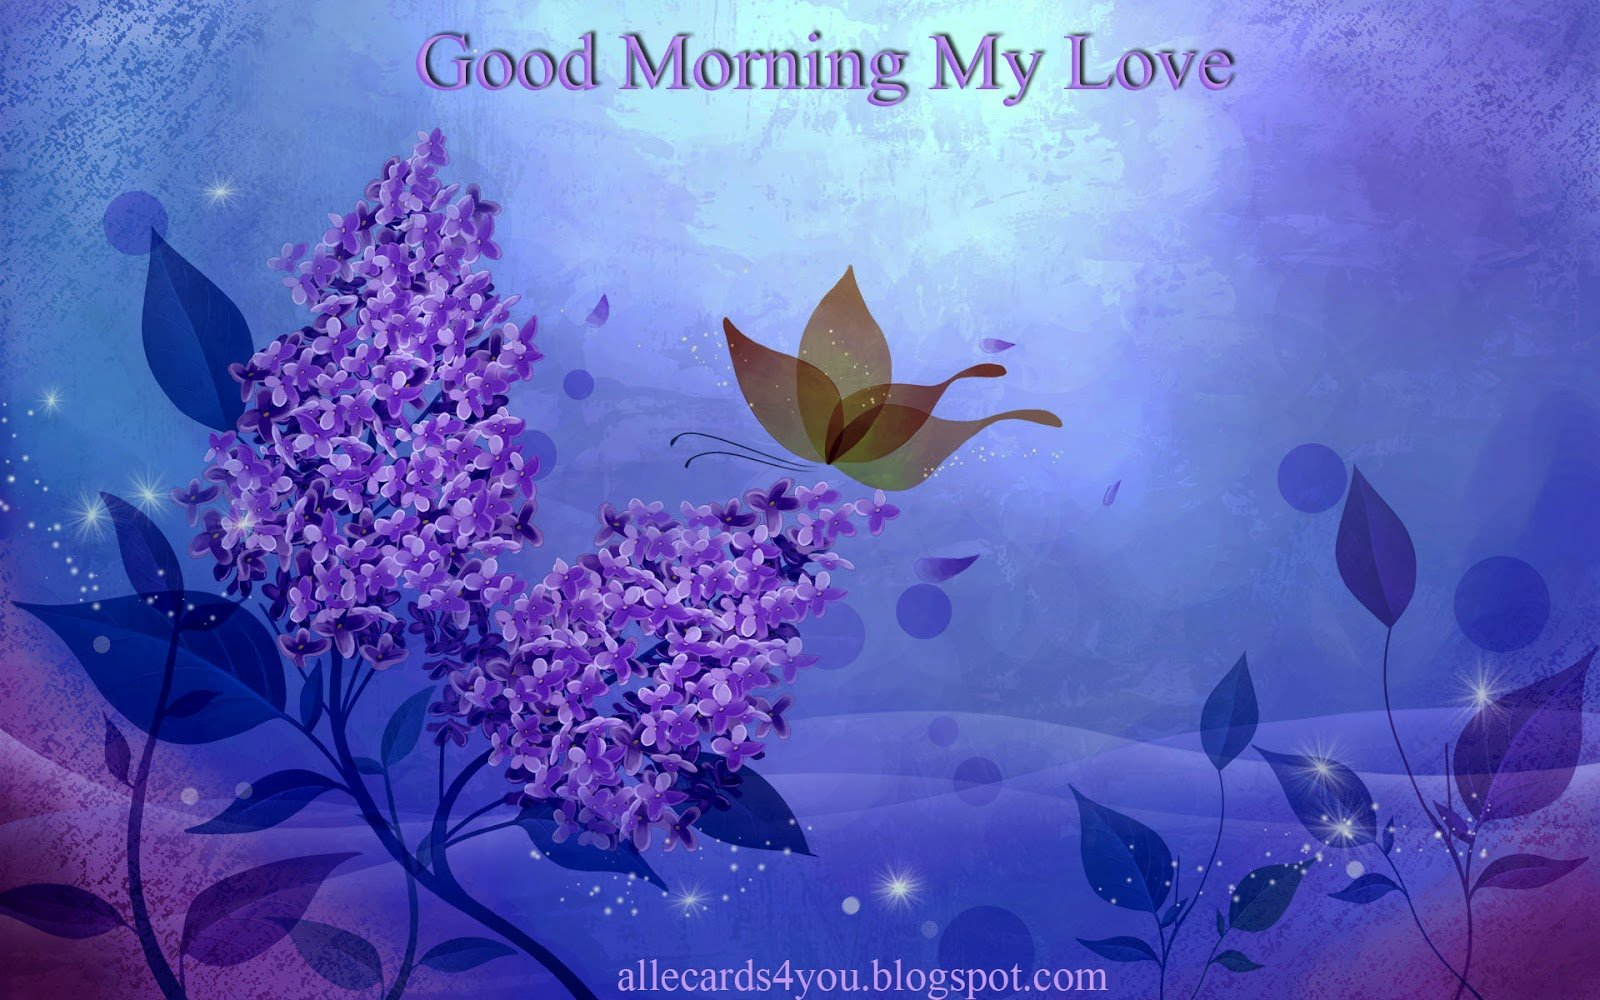 Good Morning My Love Quotes : 1838475761-good_morning_love_good_morning_my_love.jpg